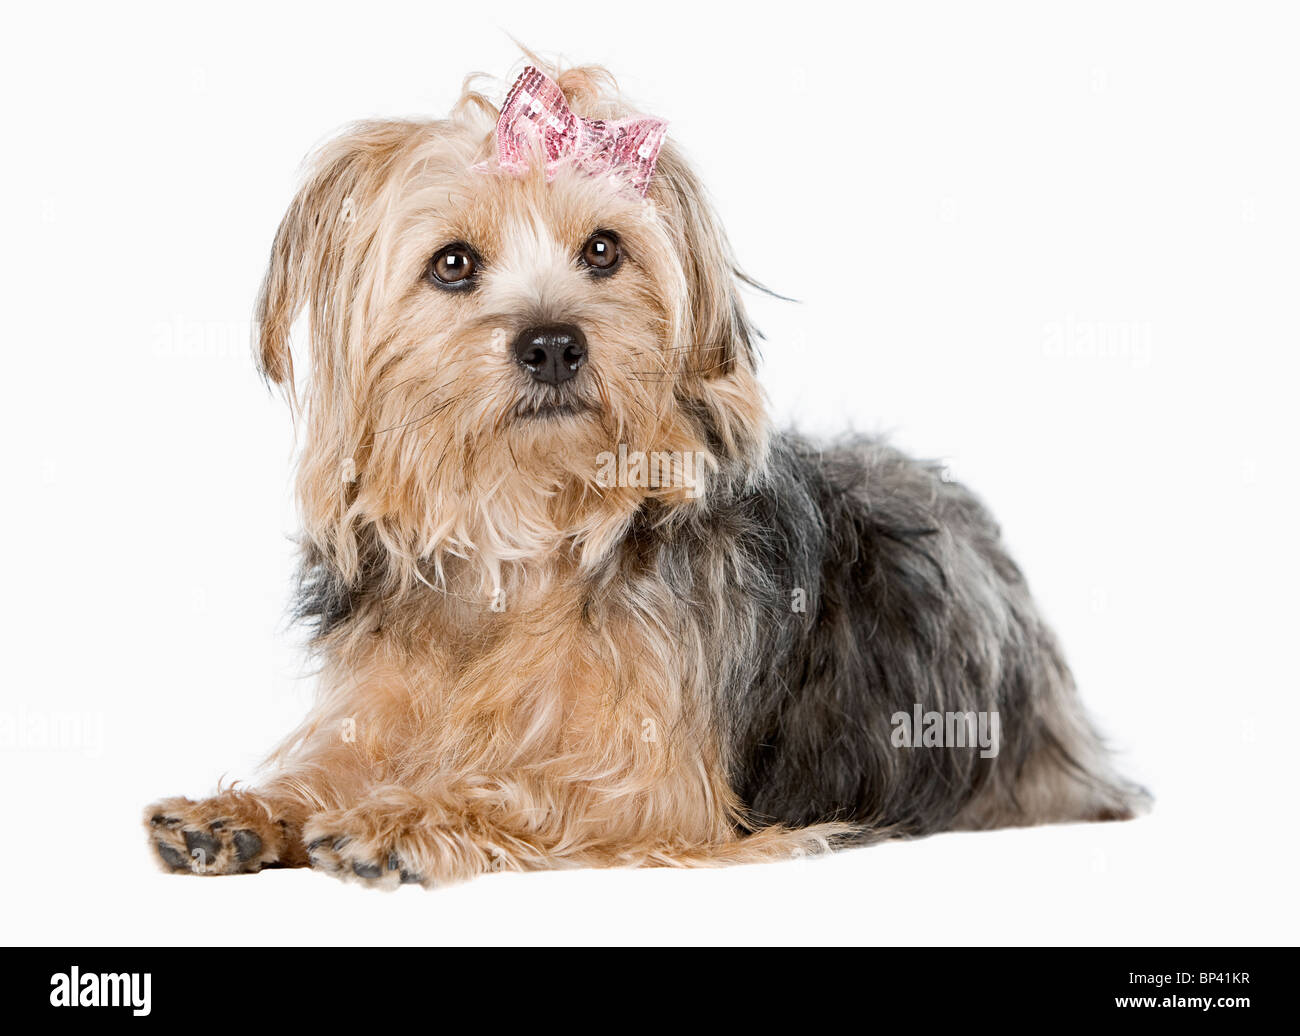 Studio Shot of a Cute Yorkshire Terrier against Light Background - Stock Image